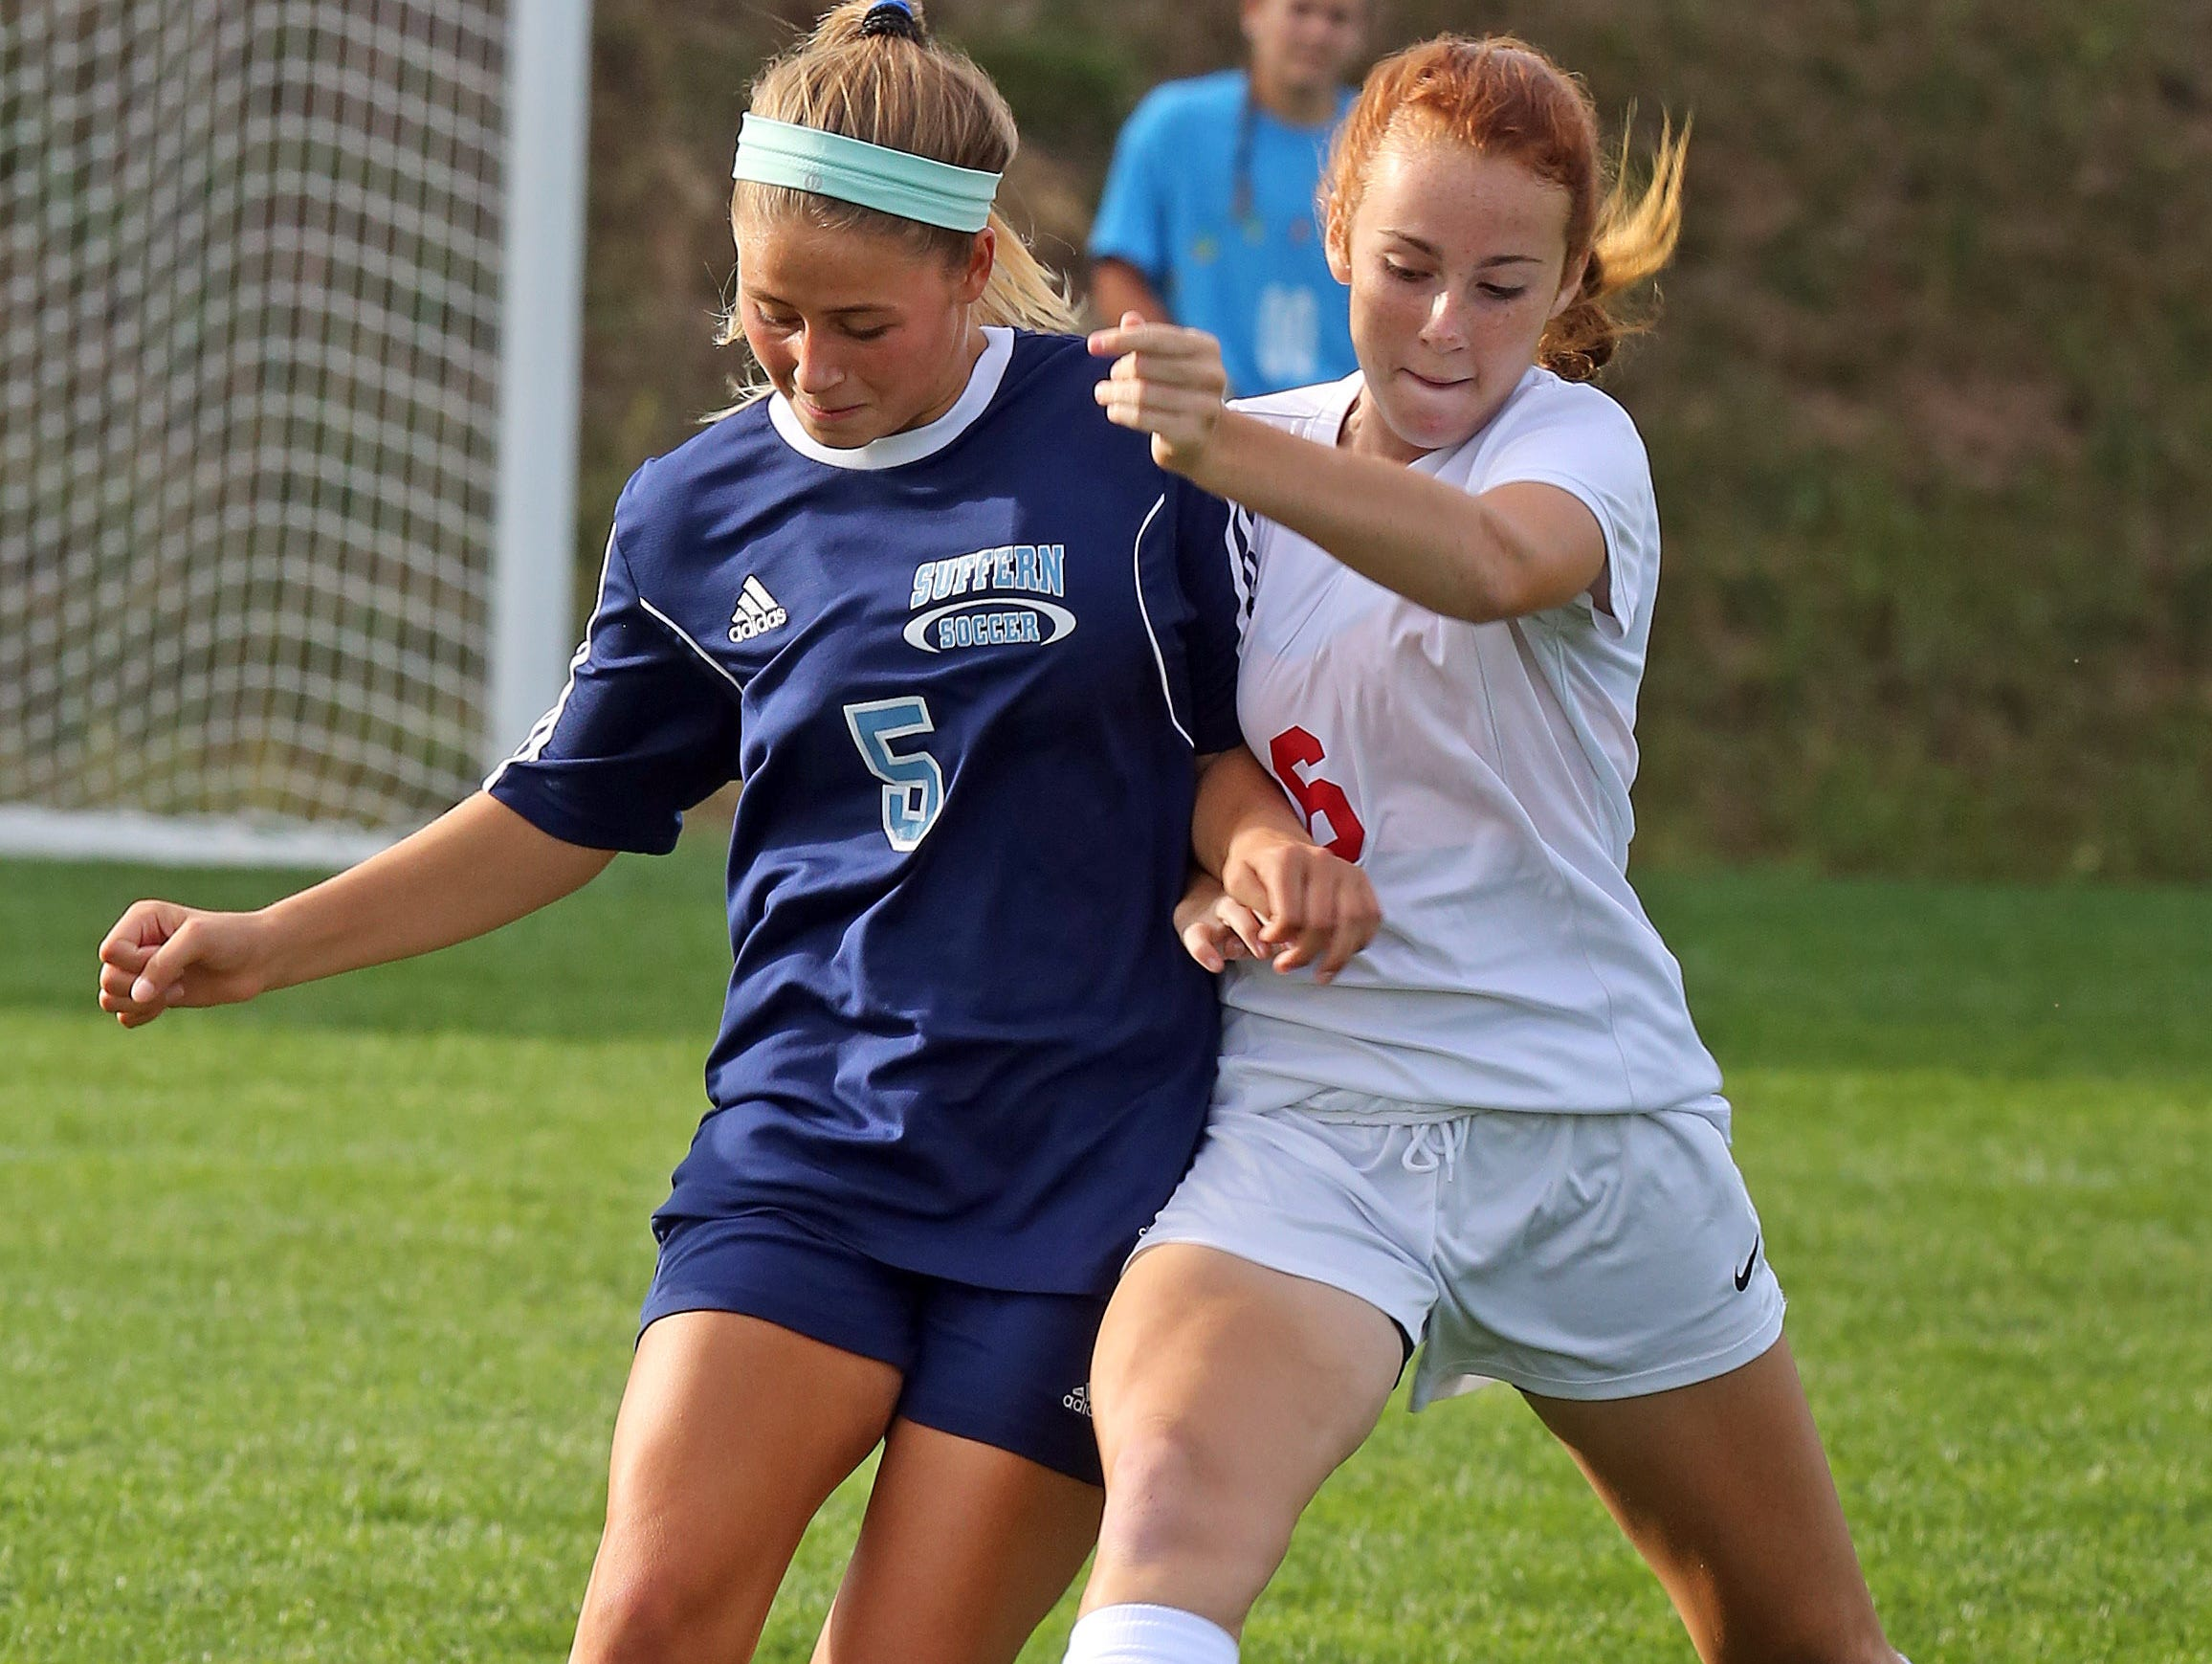 Suffern's Abby Bosco (5) and North Rockland's Phoebe Mullarky (26) battle for control of the ball during girls soccer game at North Rockland High School in Theills on Sept. 21, 2016.